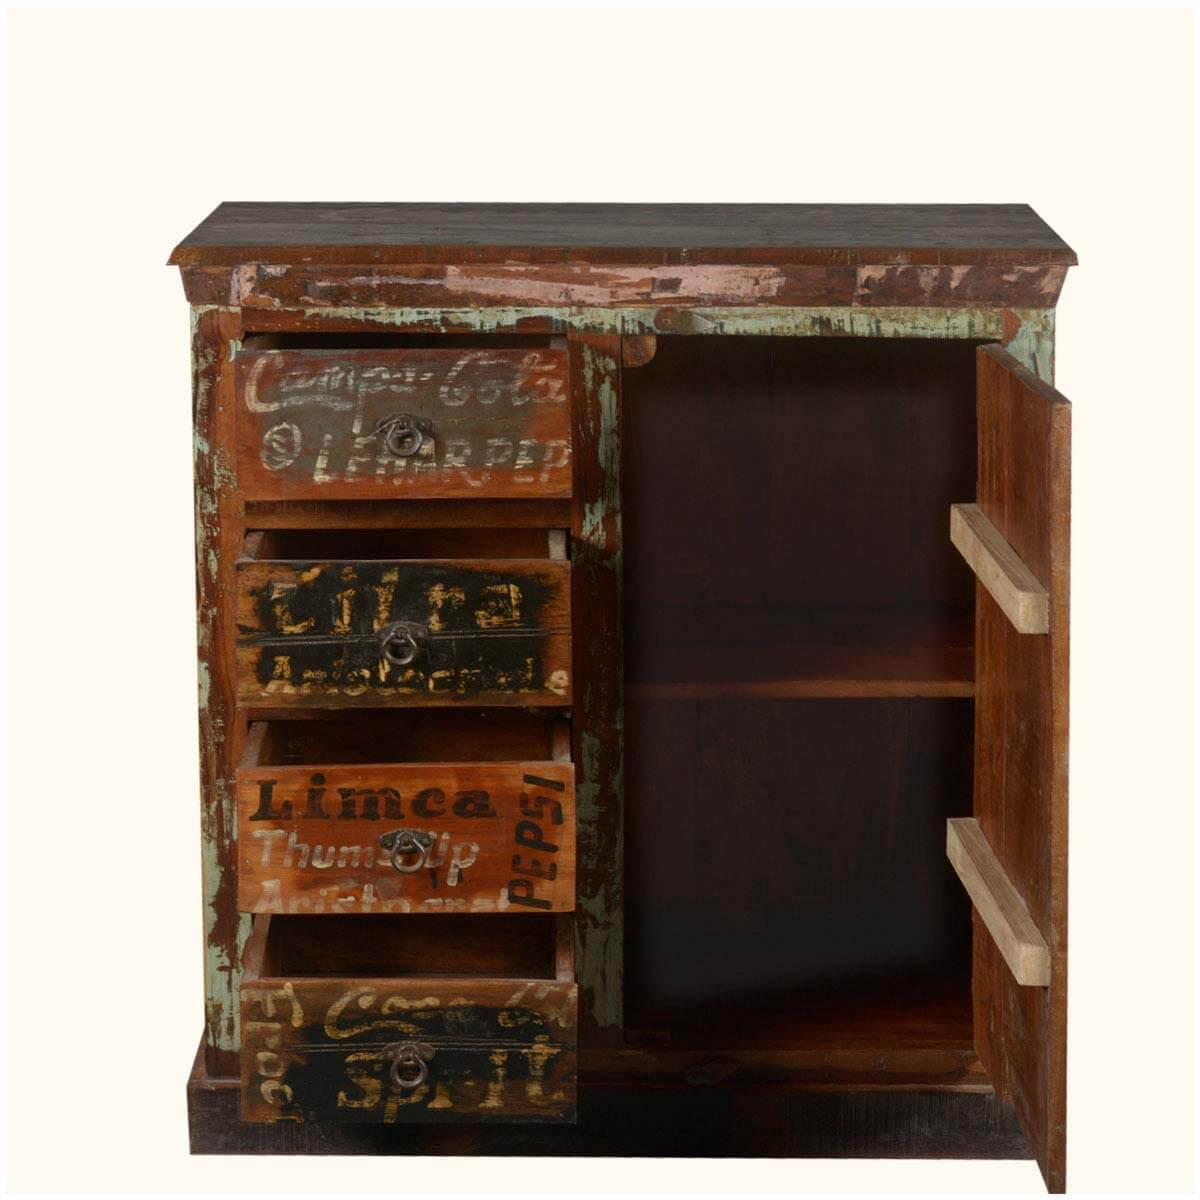 Entryway Cabinets: Nostalgic Market Labels Reclaimed Wood Storage Entryway